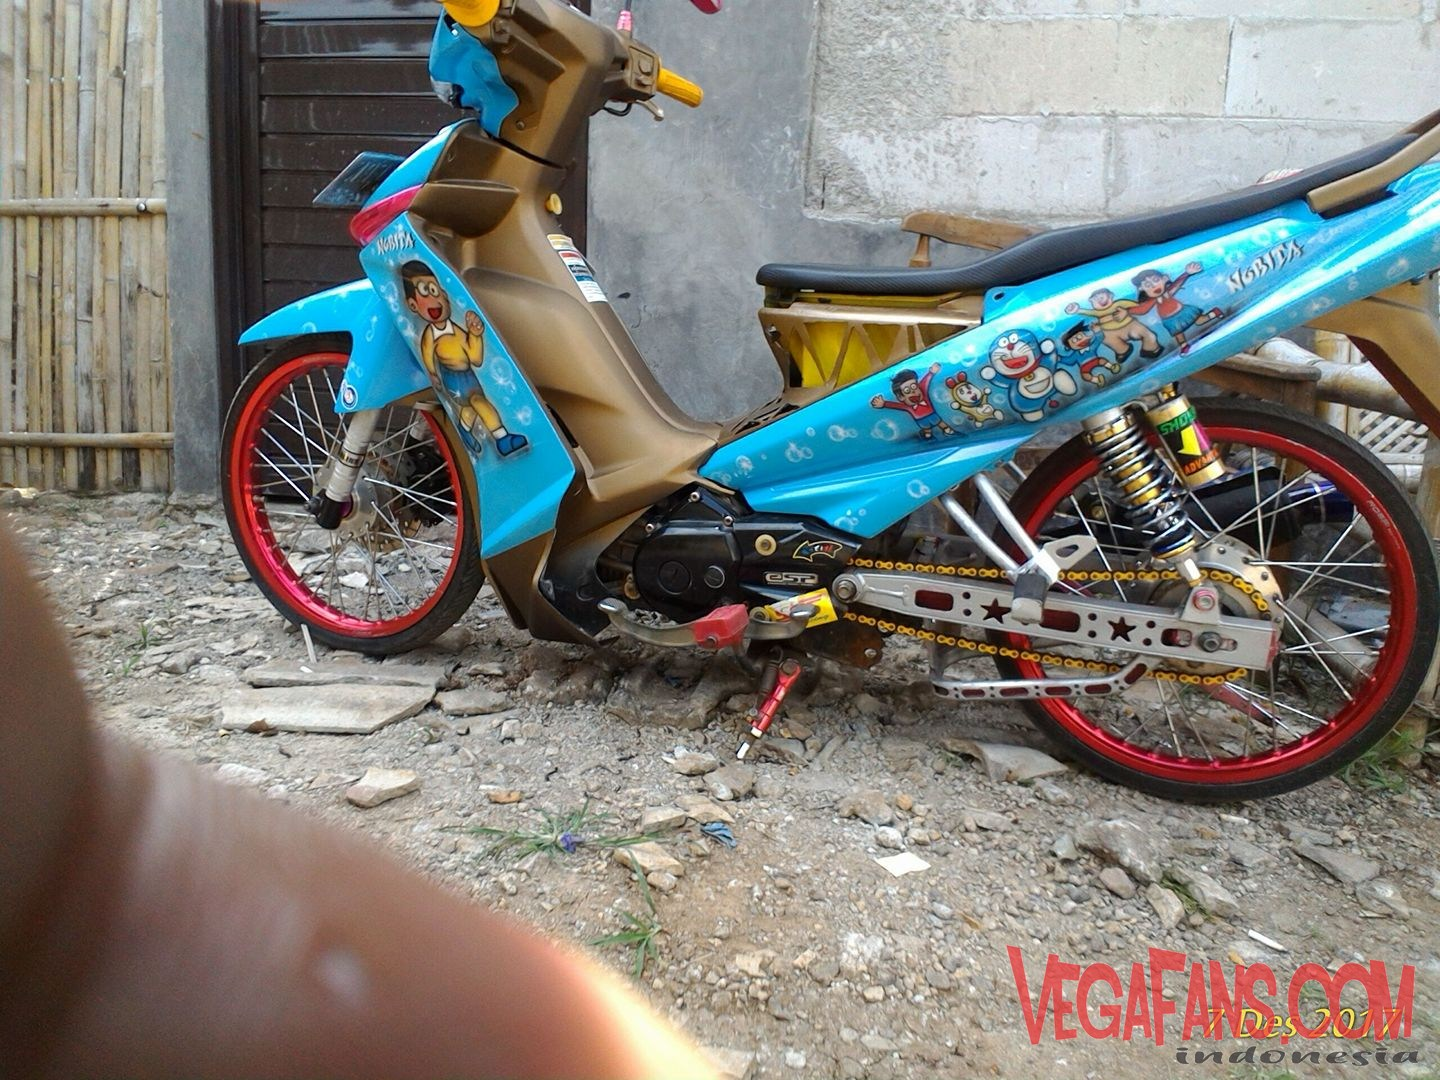 Ide 57 Modifikasi Motor Vega Zr Touring Terlengkap Motor Cross